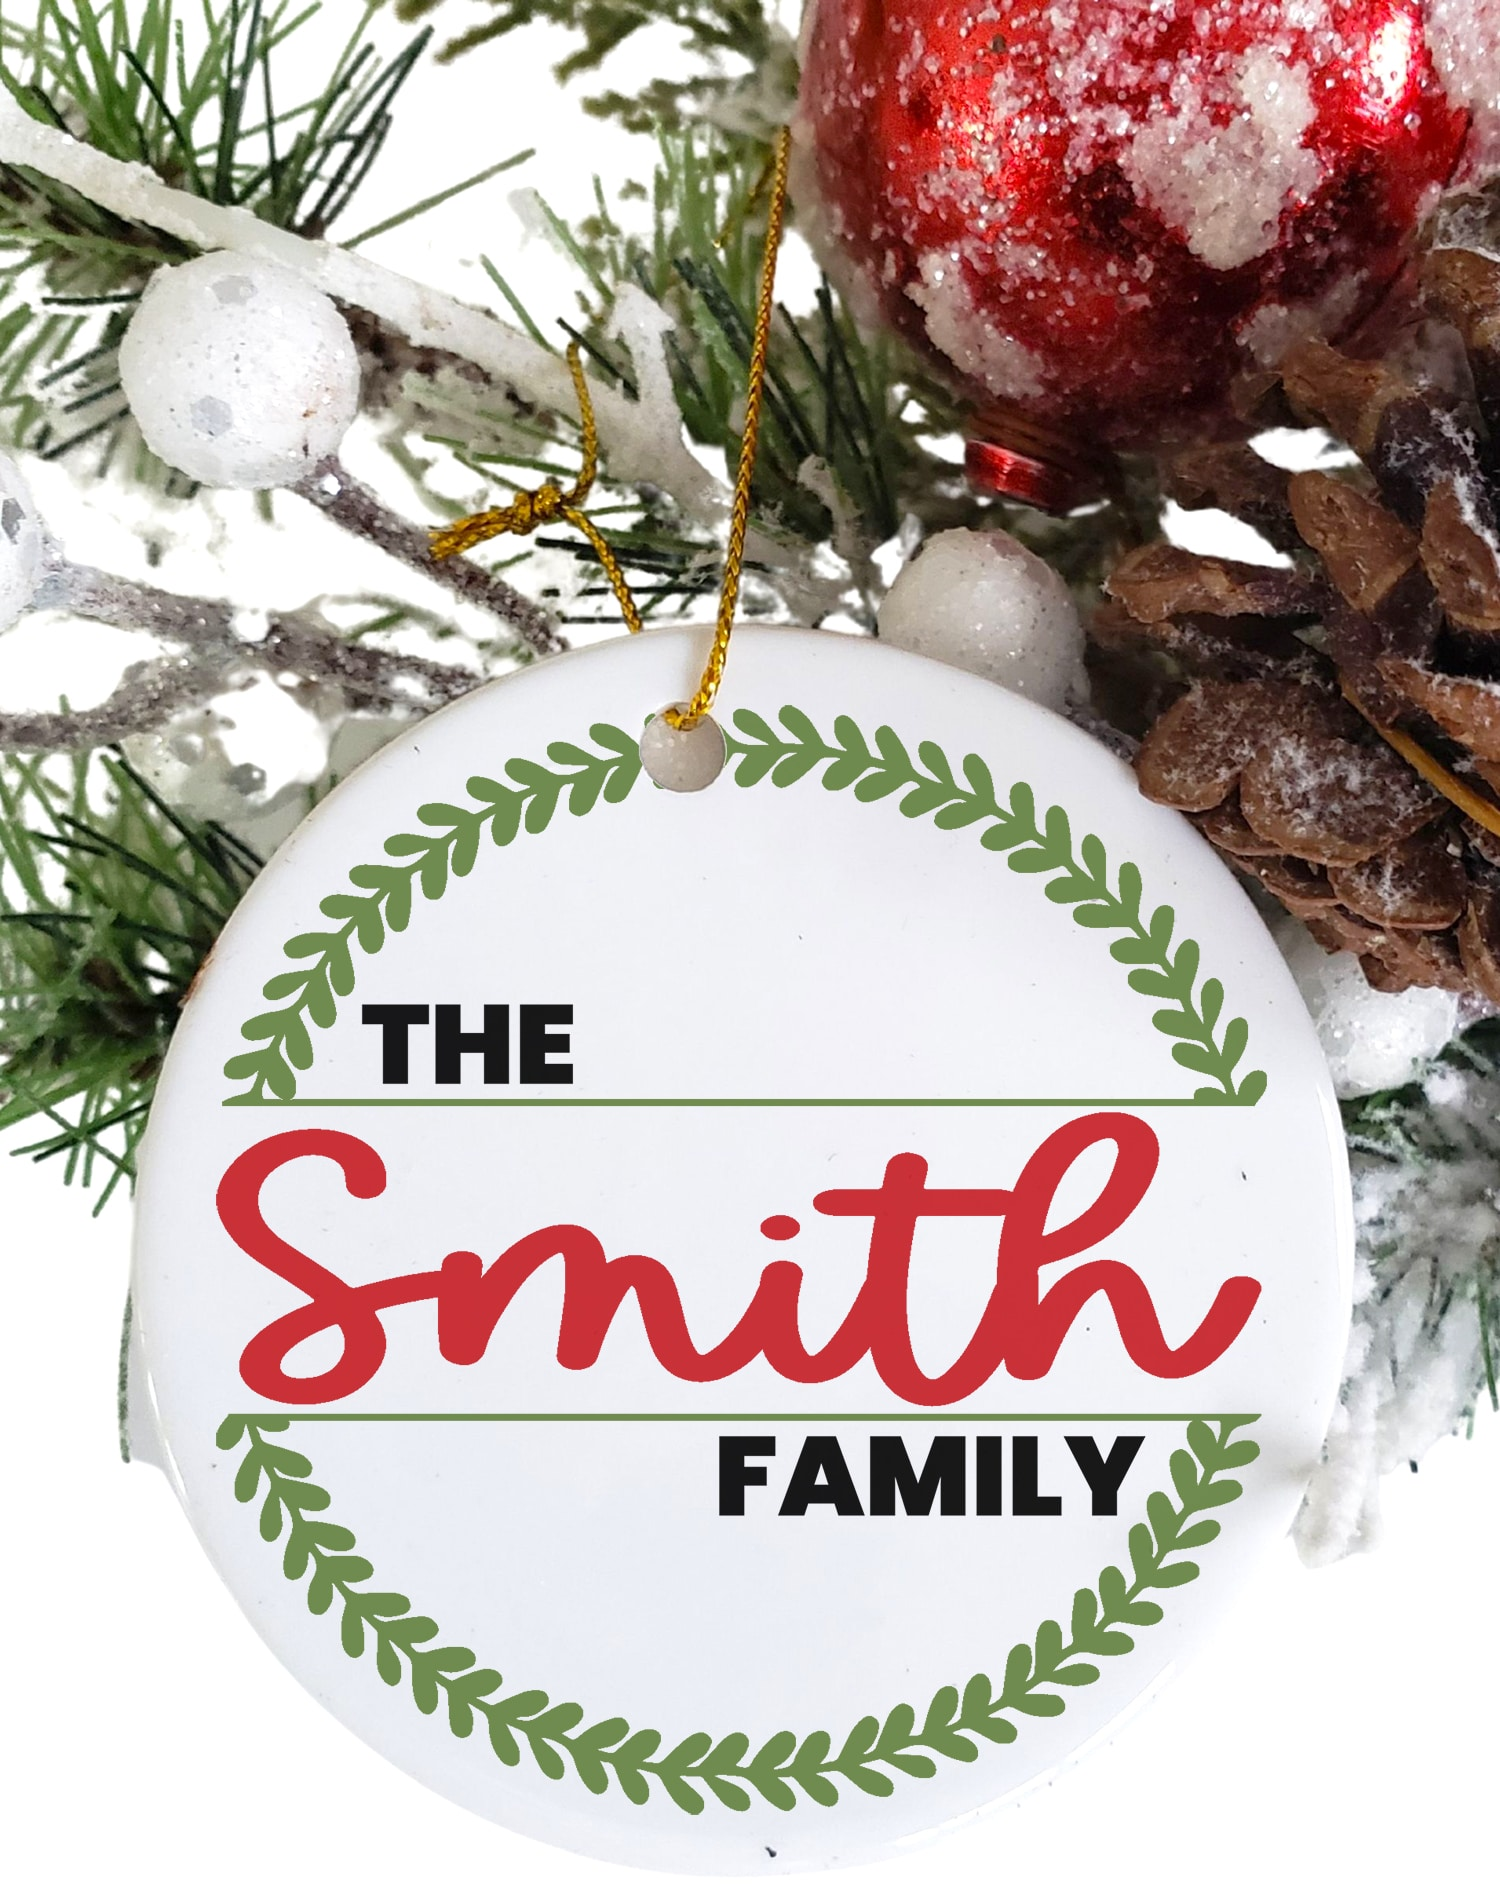 """Round white Christmas ornament with """"The Smith Family"""" and wreath design in red and green"""